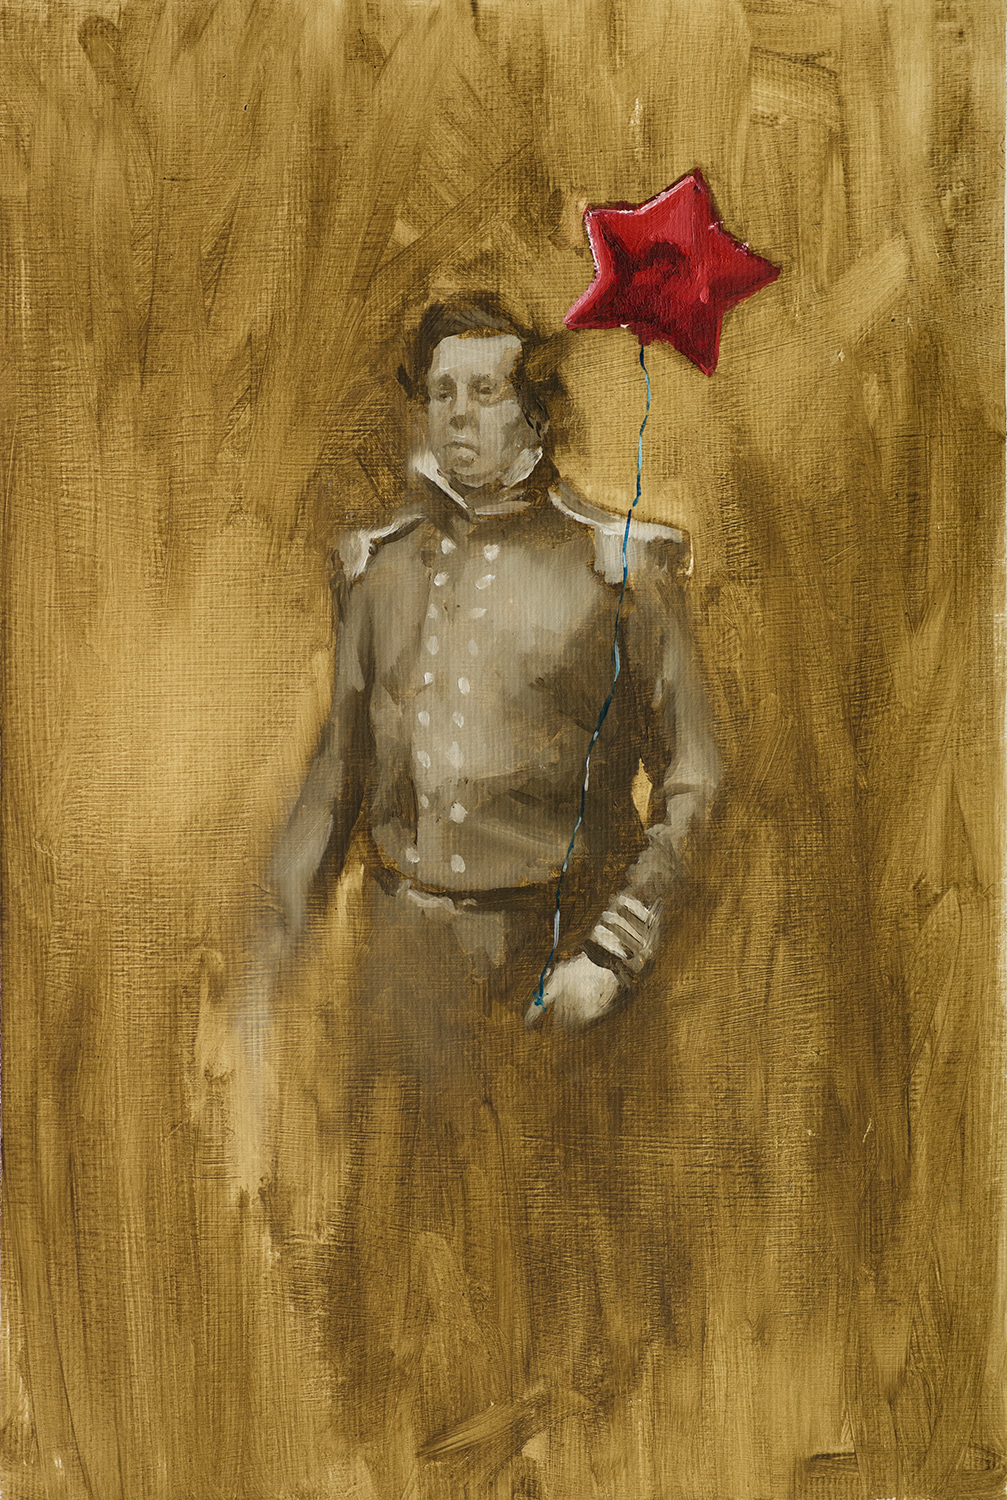 Officer II, Oil on Paper, 56x42cm, 2014